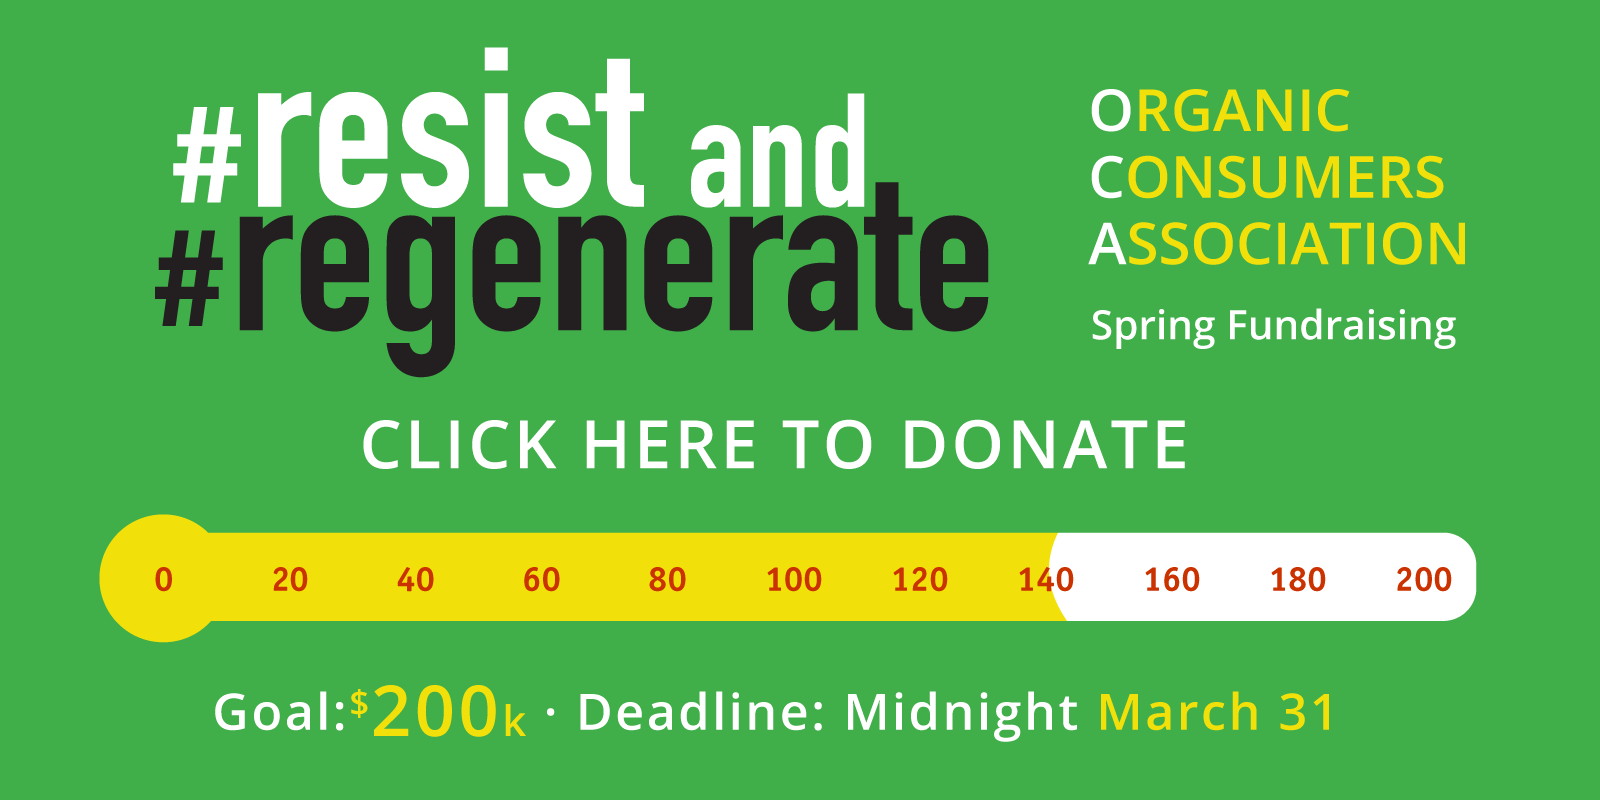 click here to donate fundraising meter at $140k